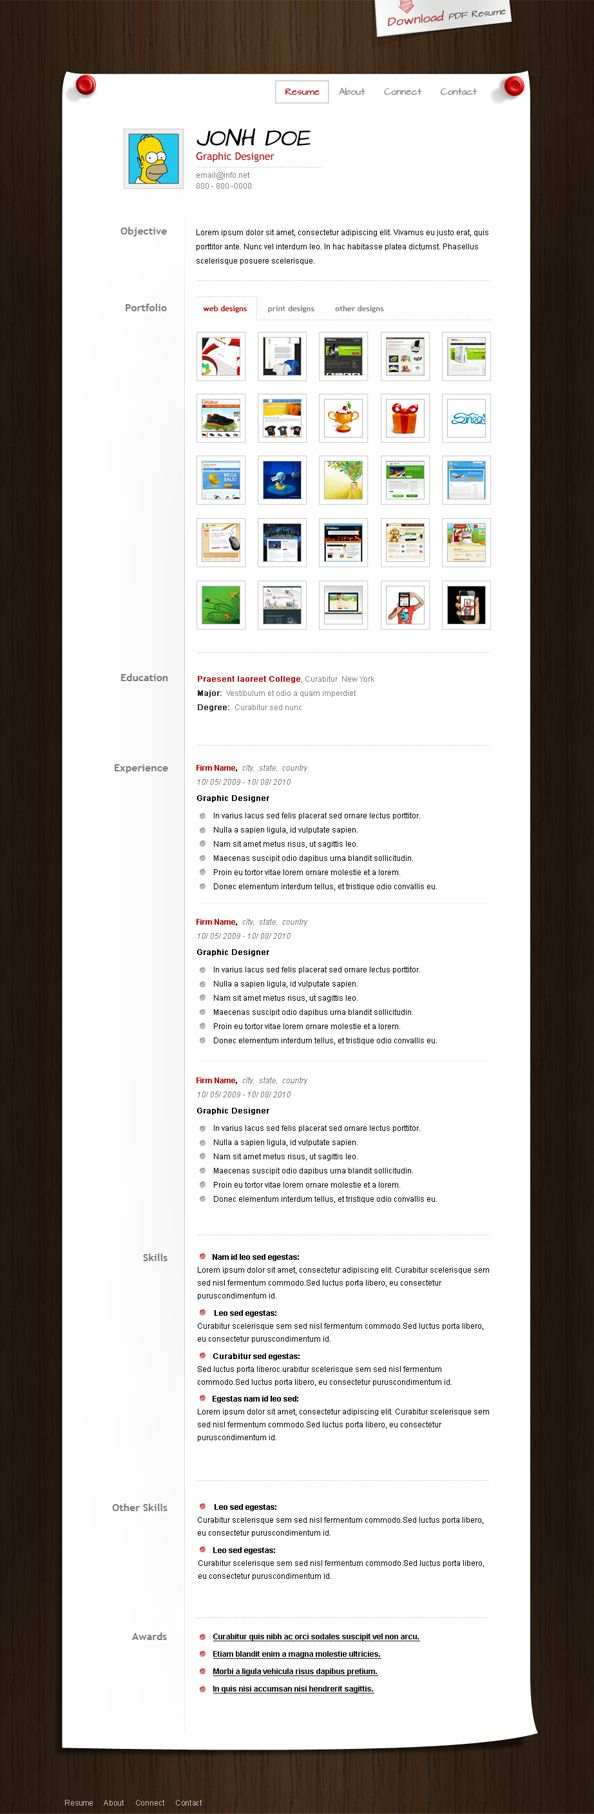 Best Online Cv Images On   Online Cv Resume And Curriculum